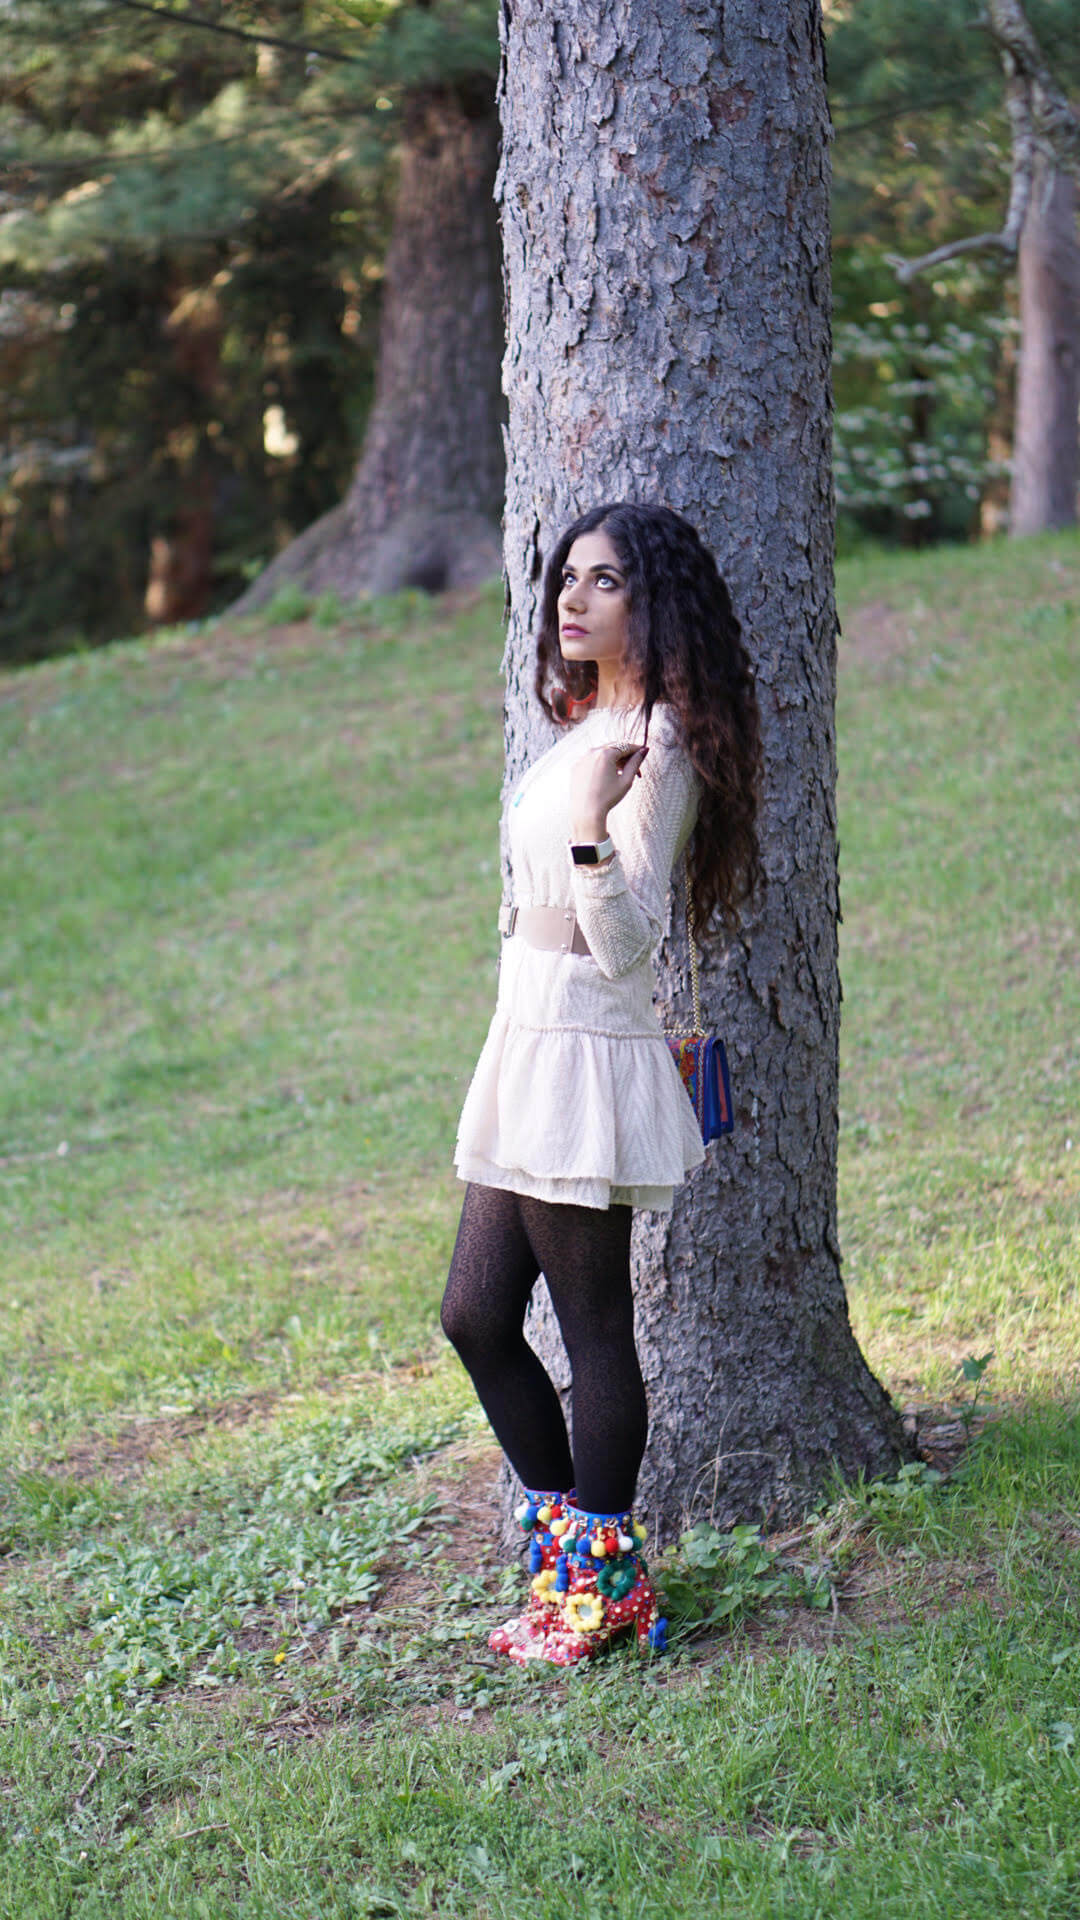 Software engineer and fashion blogger Abeer Kadhem feels completely at home in Rochester.